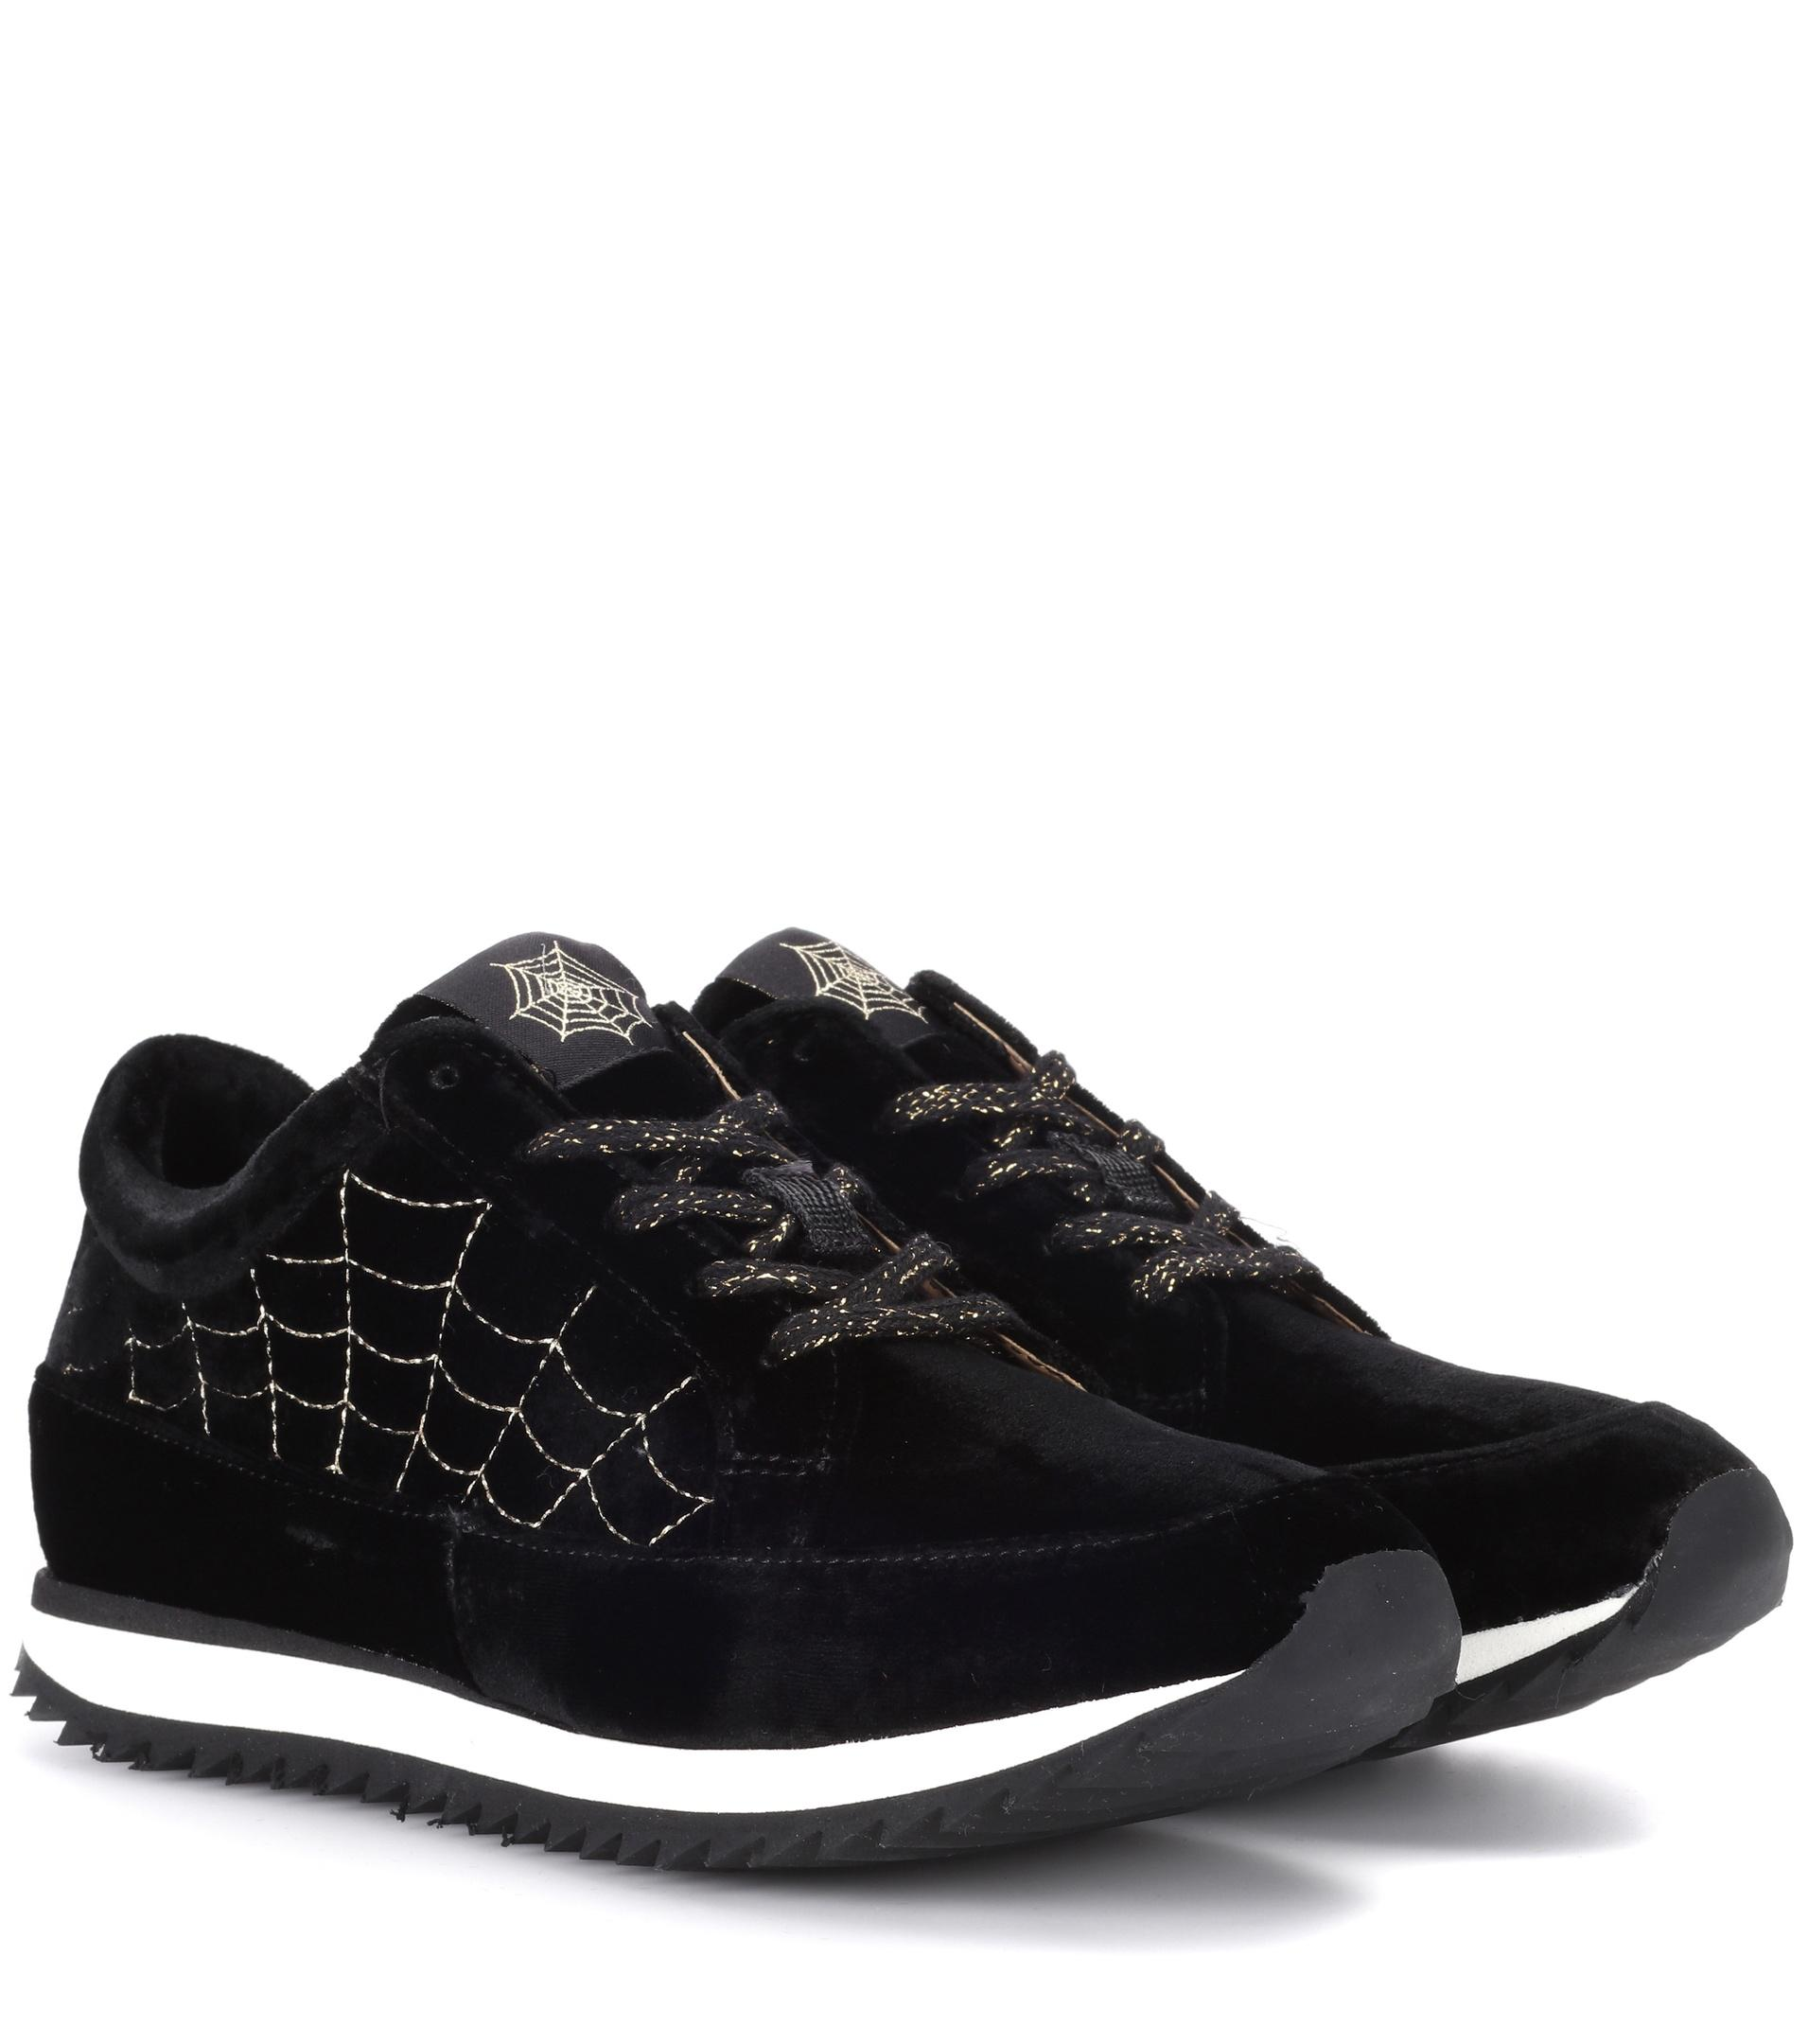 Charlotte Olympia Work It Dragon velvet sneakers Buy Cheap Visit New Really Sale Online Buy Cheap Exclusive Sale Best Store To Get With Mastercard Cheap Price g5WEKvoZd